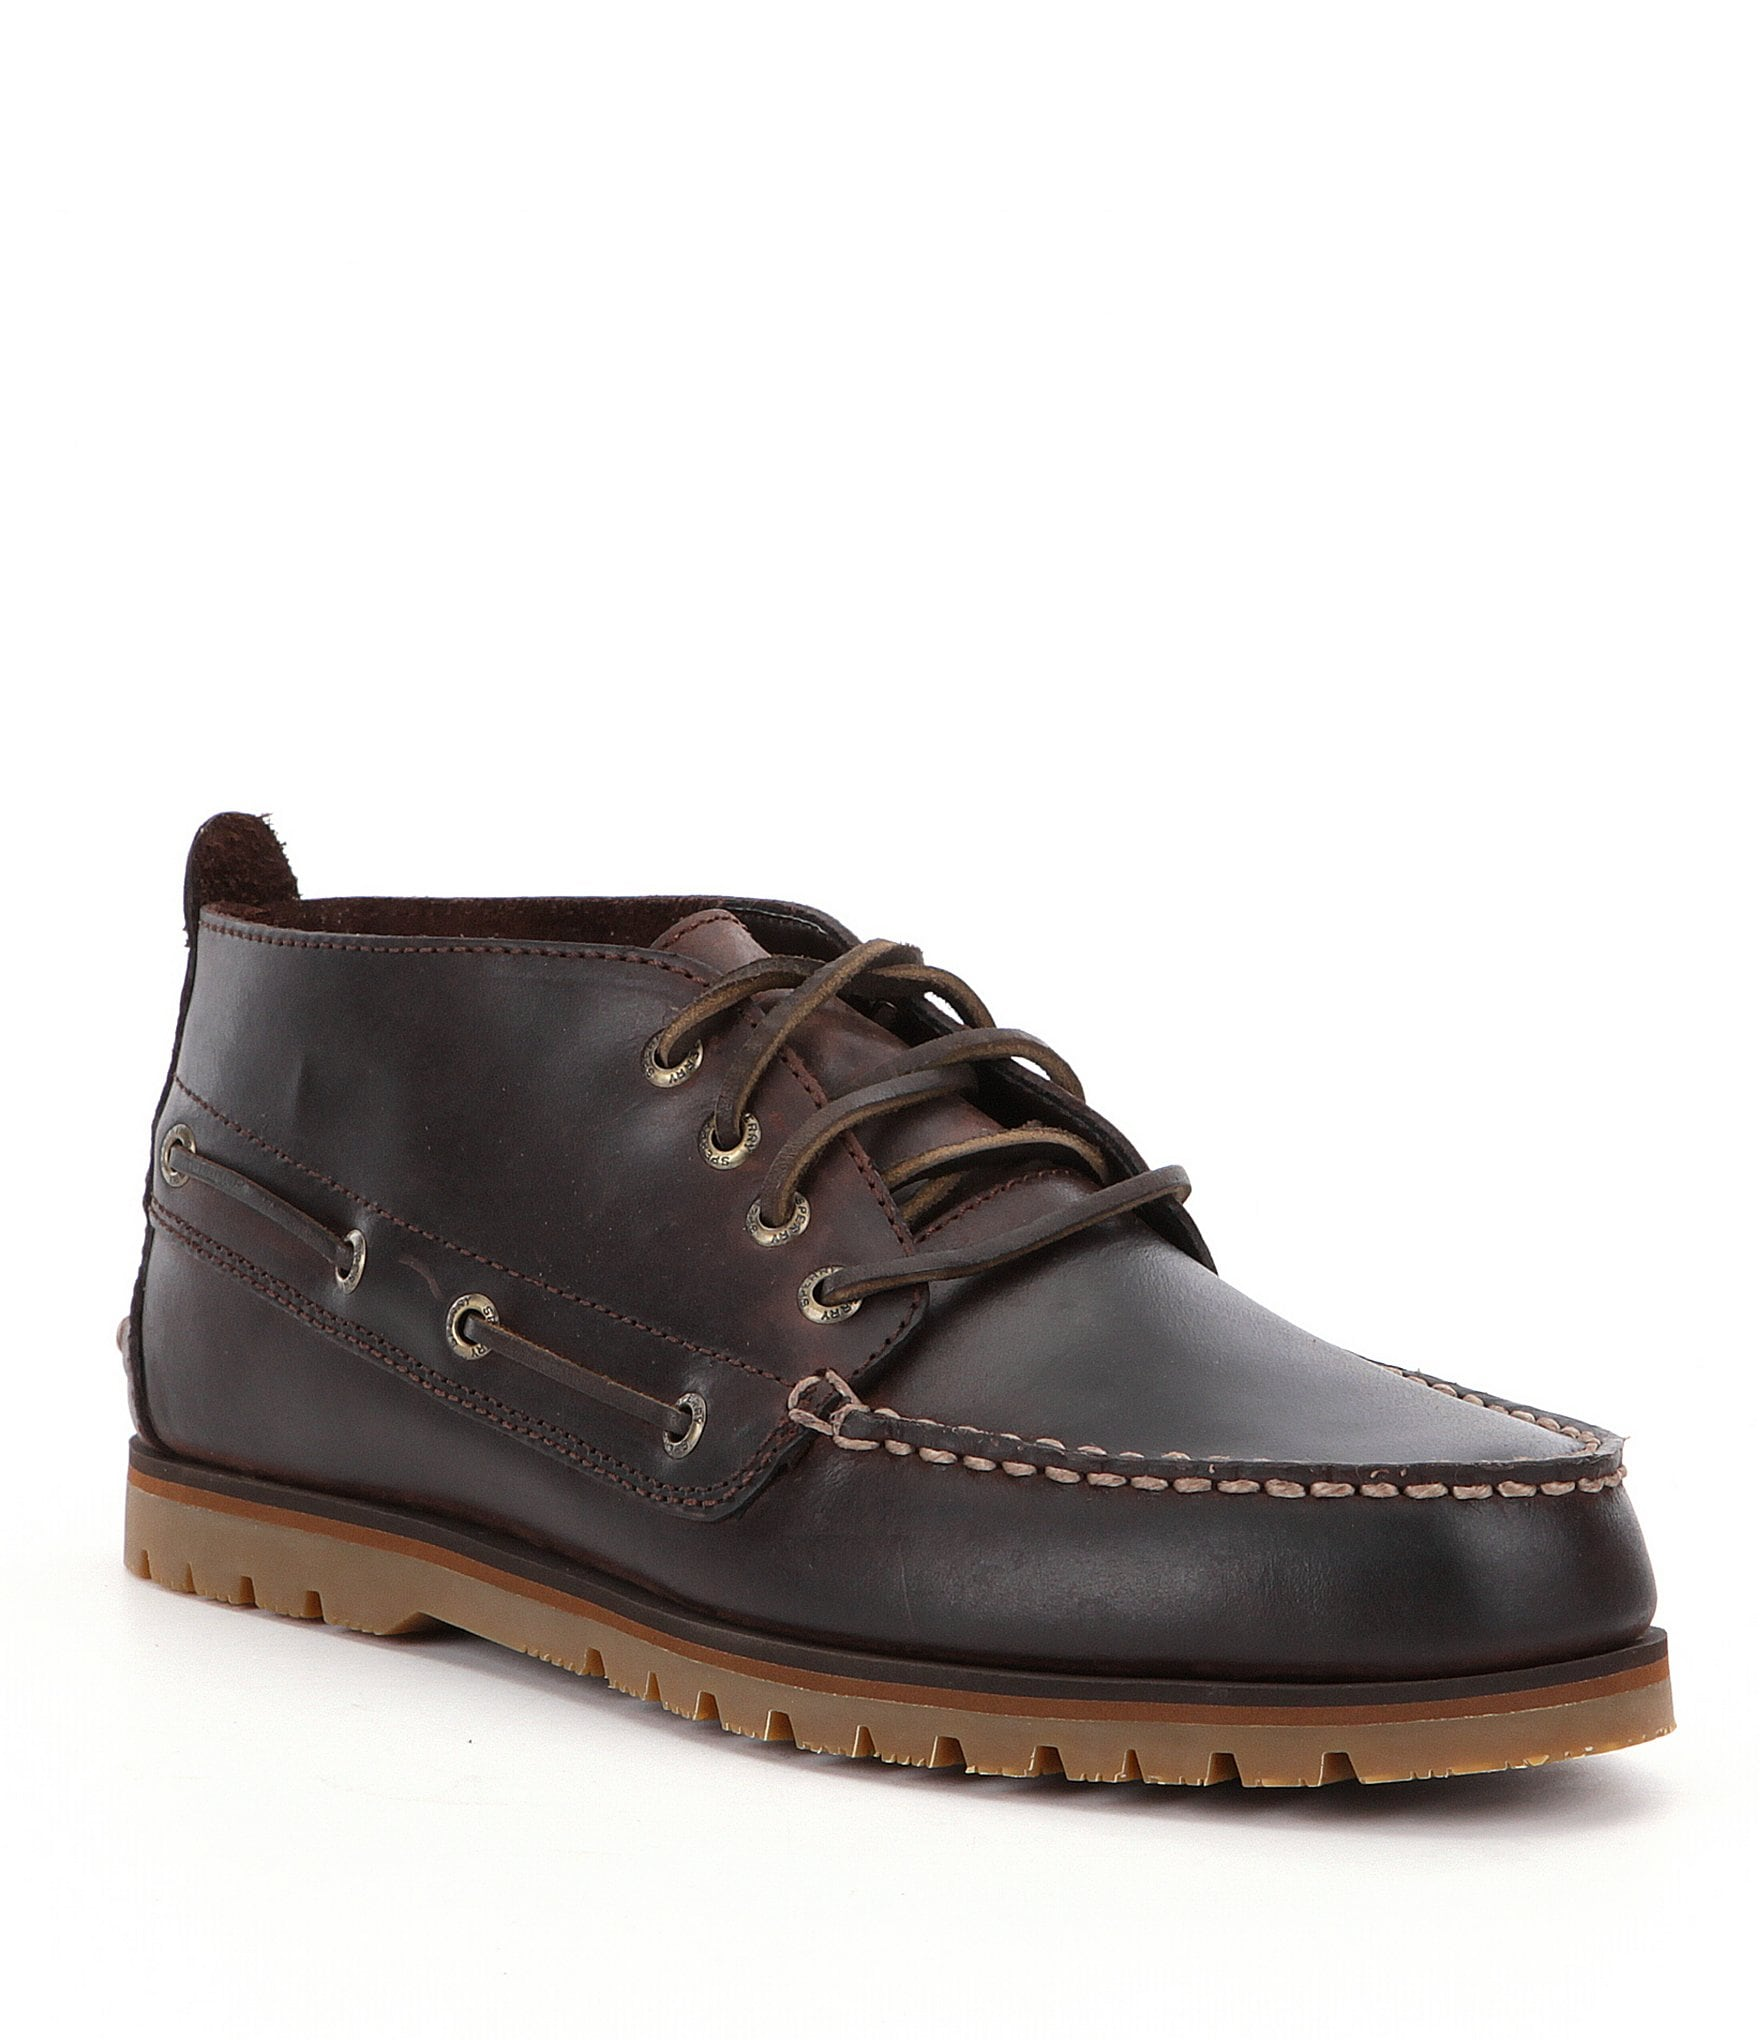 Innovative MENS SPERRY TOP SIDER BROWN LUG CHUKKA WATERPROOF DECK SHOES ANKLE BOOTS SIZE | EBay